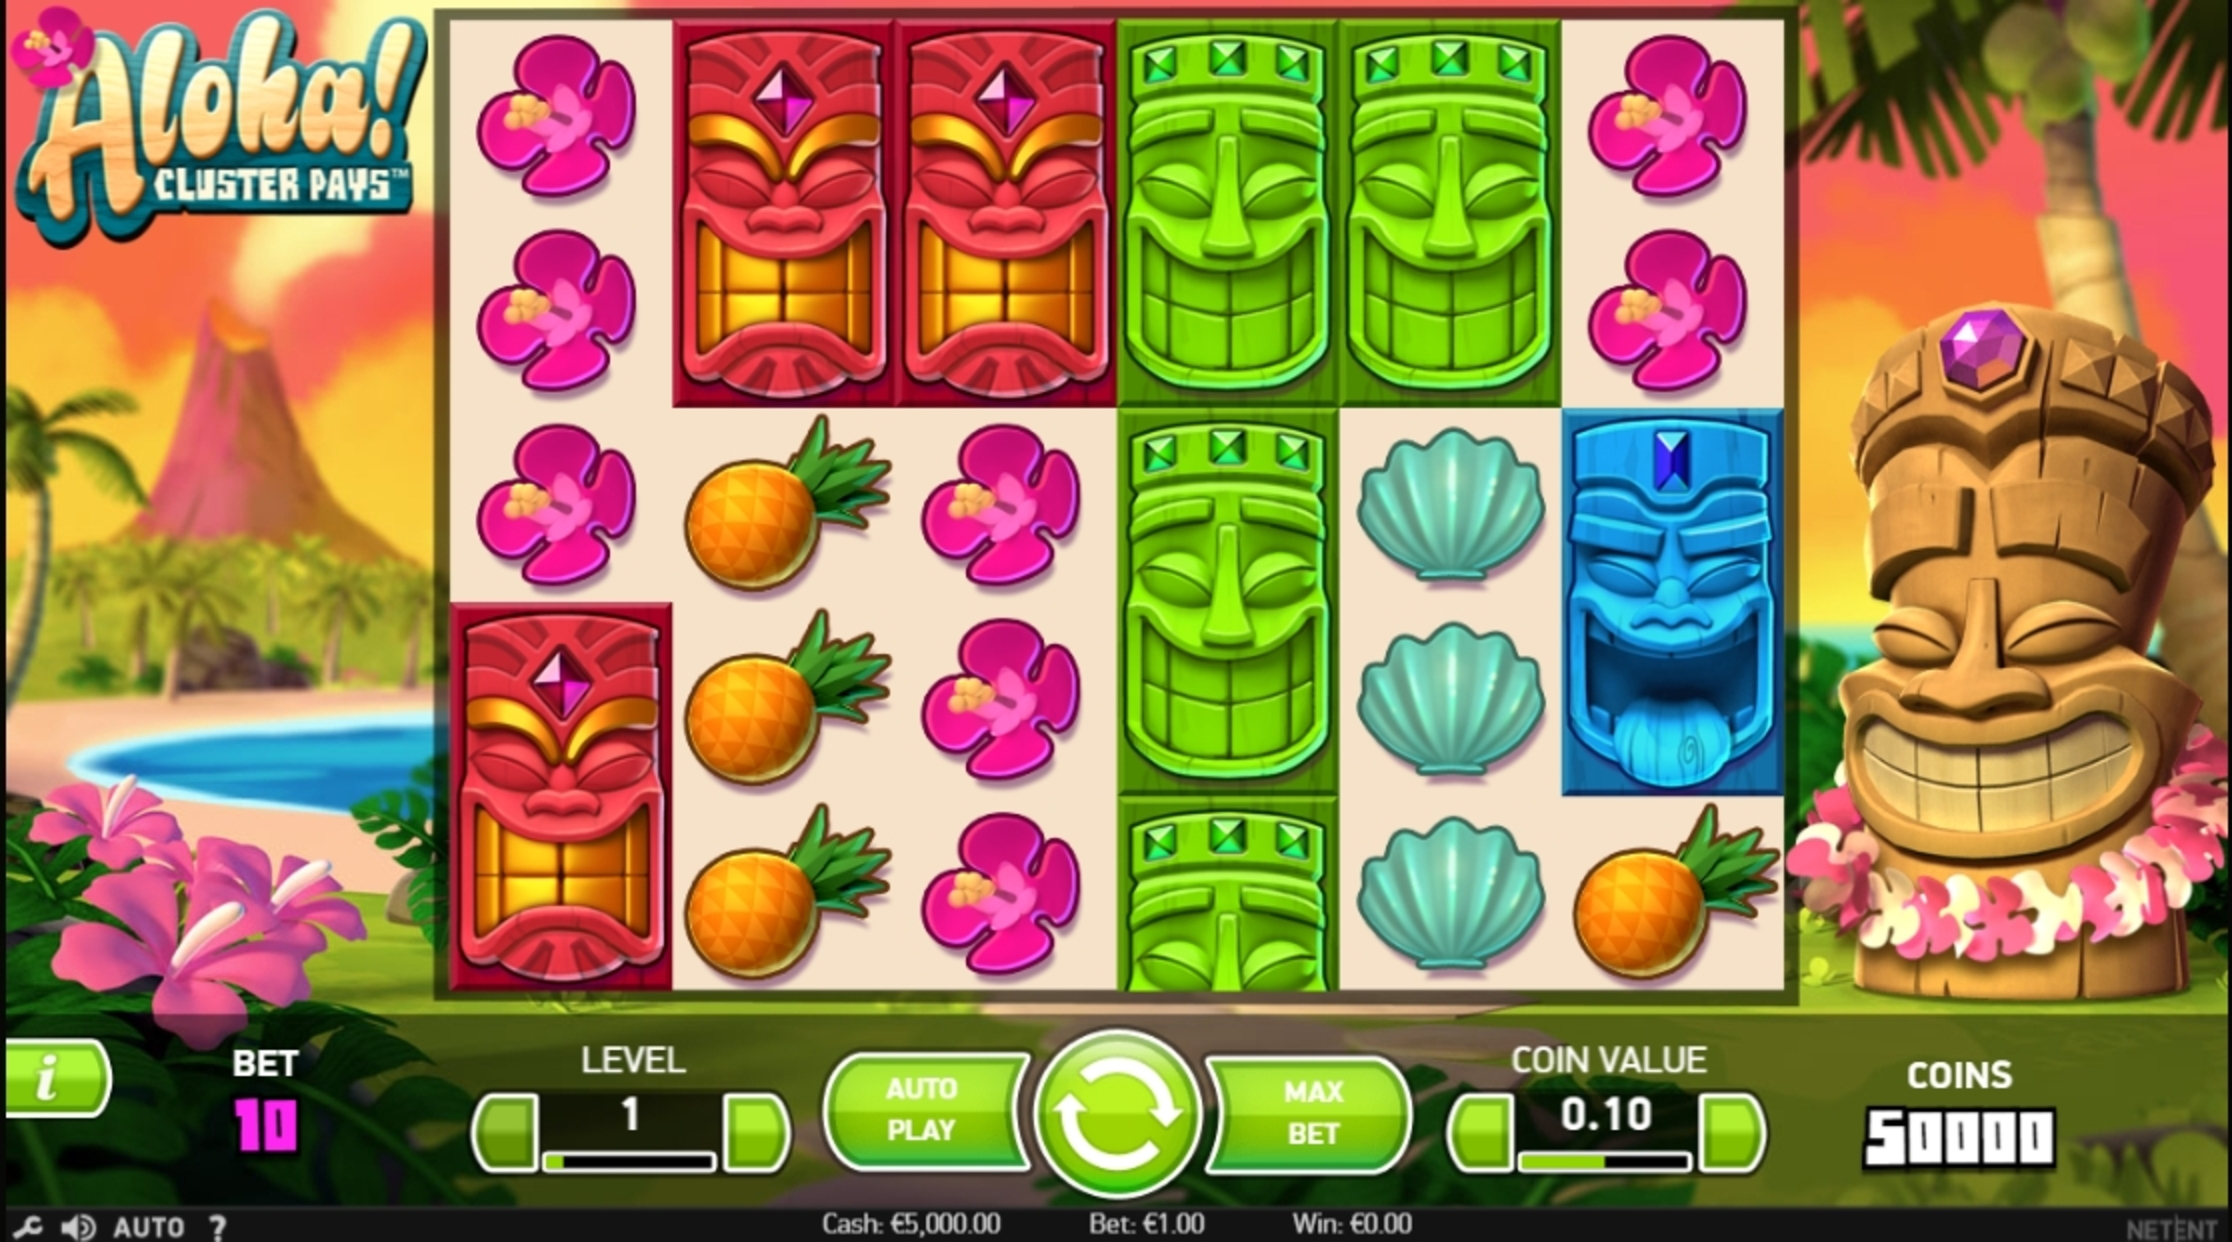 Reels in Aloha! Cluster Pays Slot Game by NetEnt